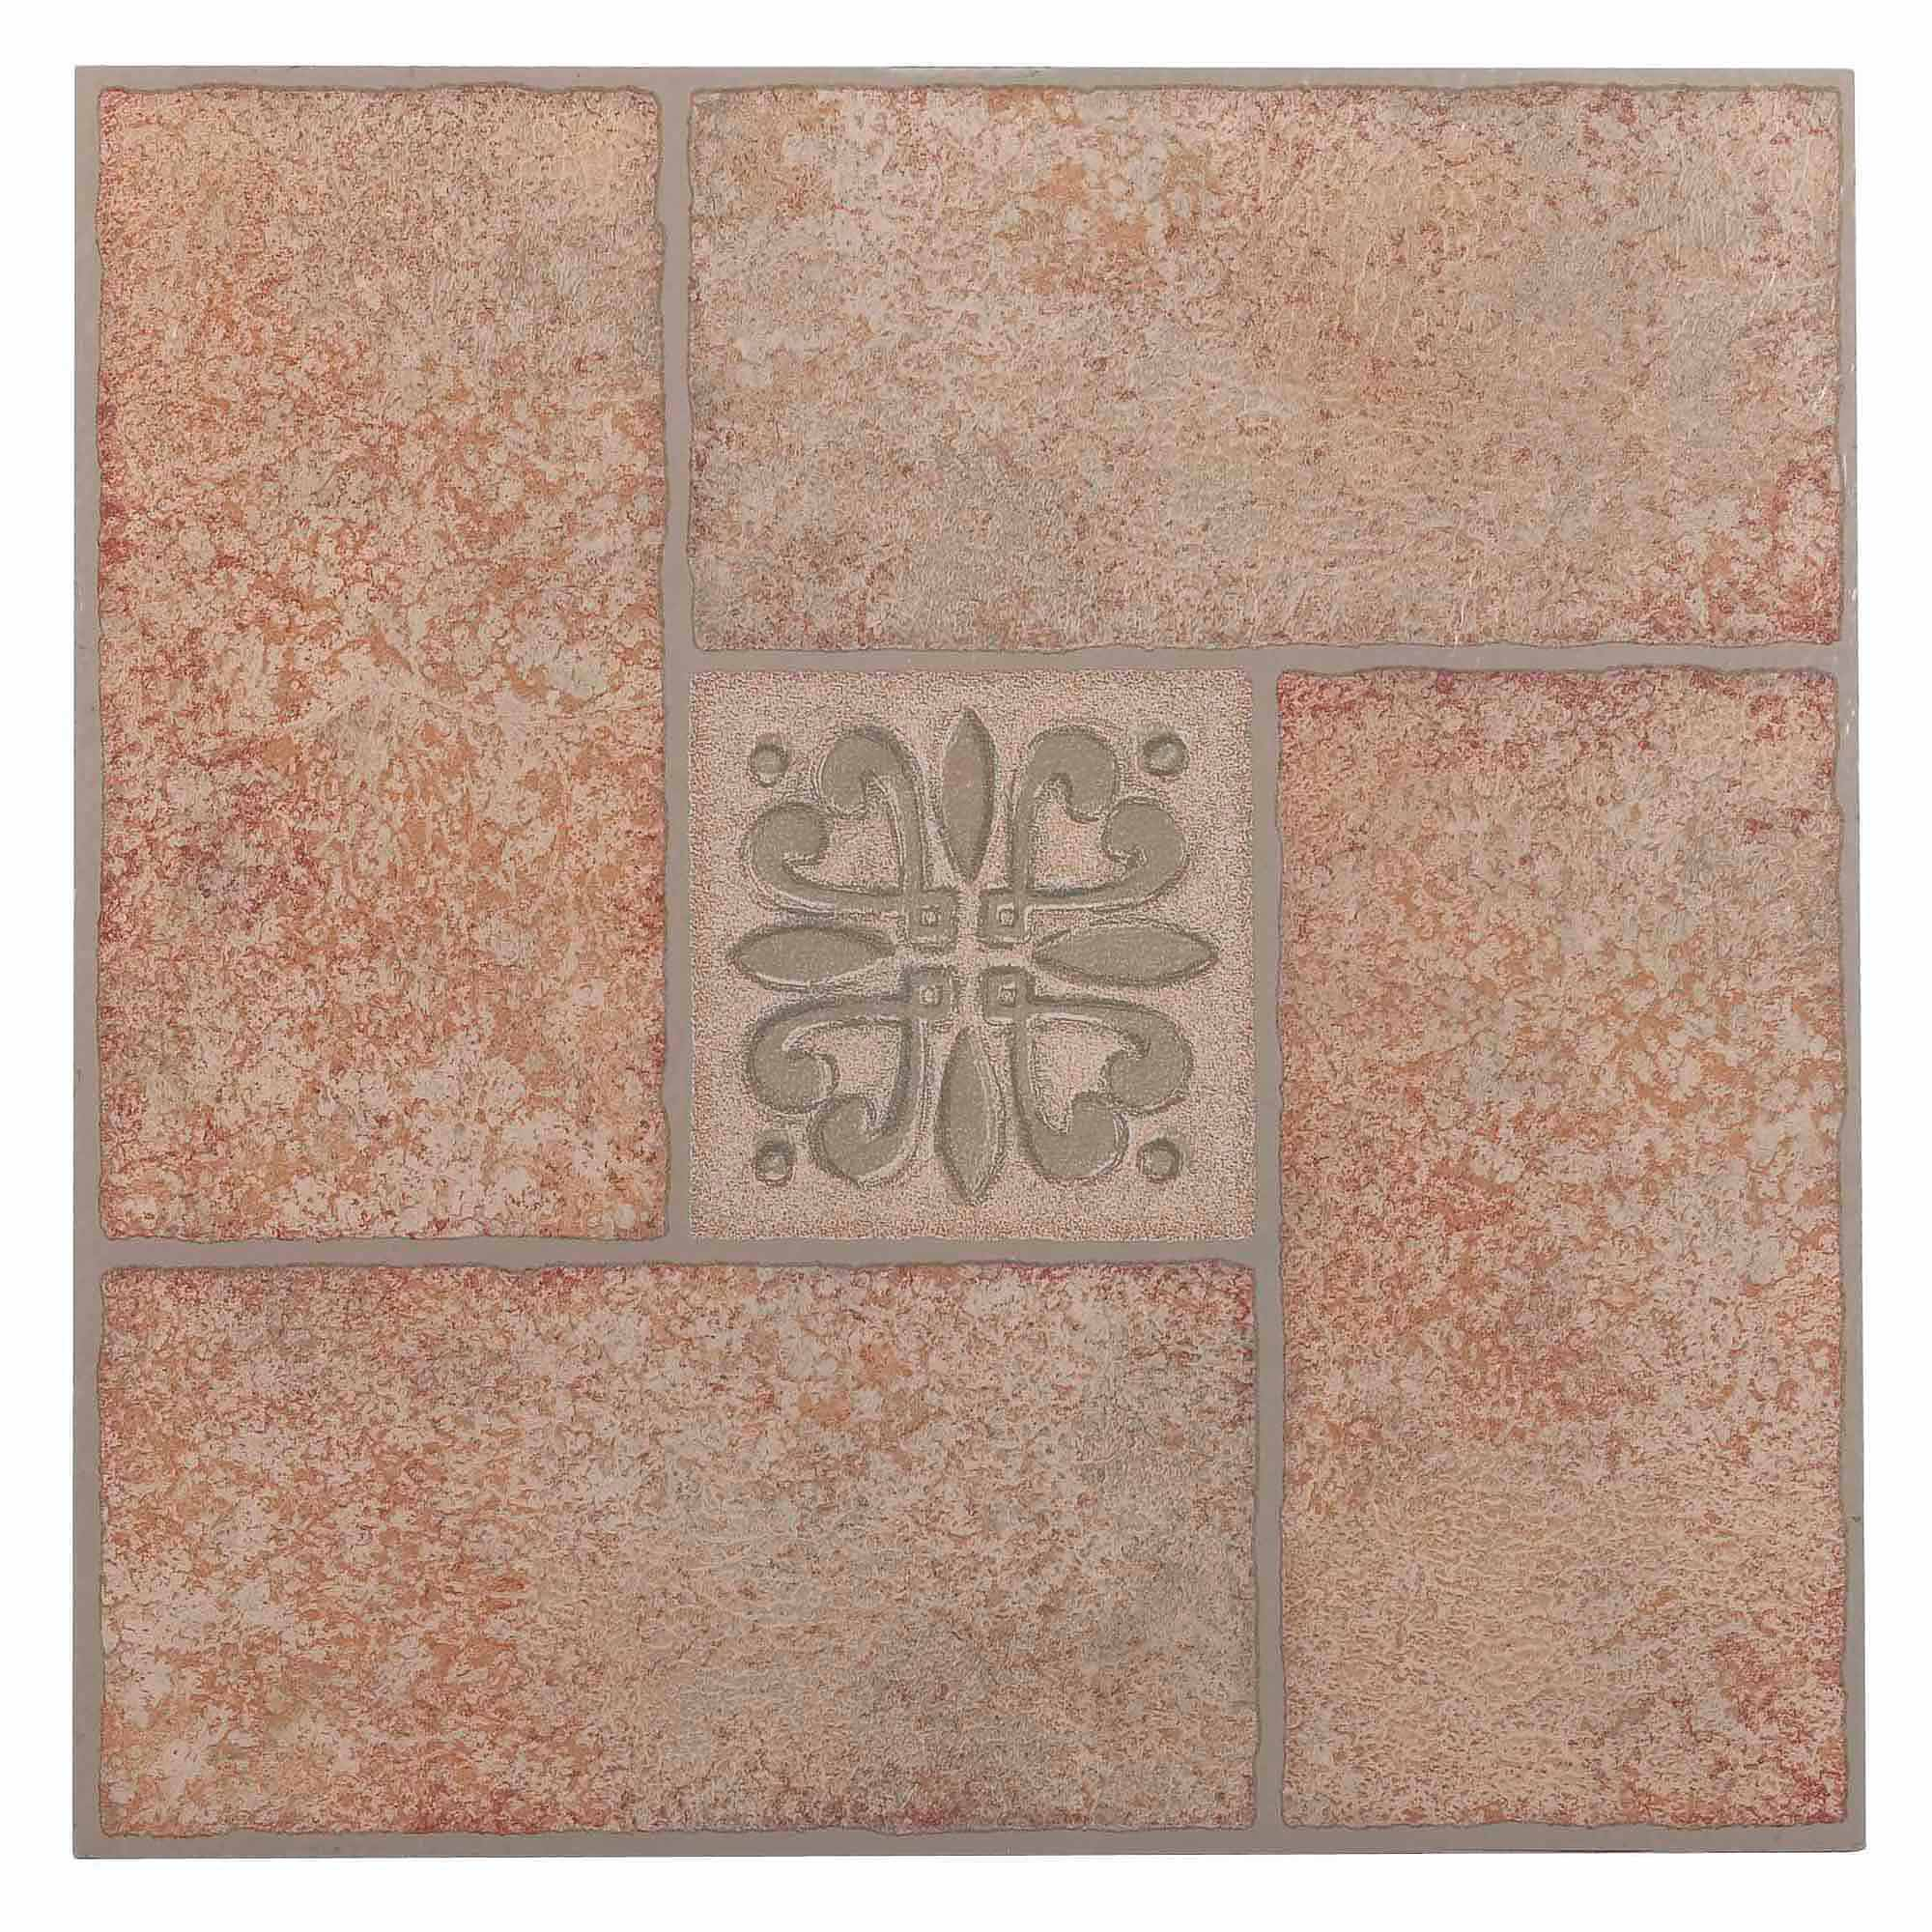 Self adhesive floor tiles nexus beige terracotta motif center 12x12 self adhesive vinyl floor tile 20 tiles20 dailygadgetfo Images